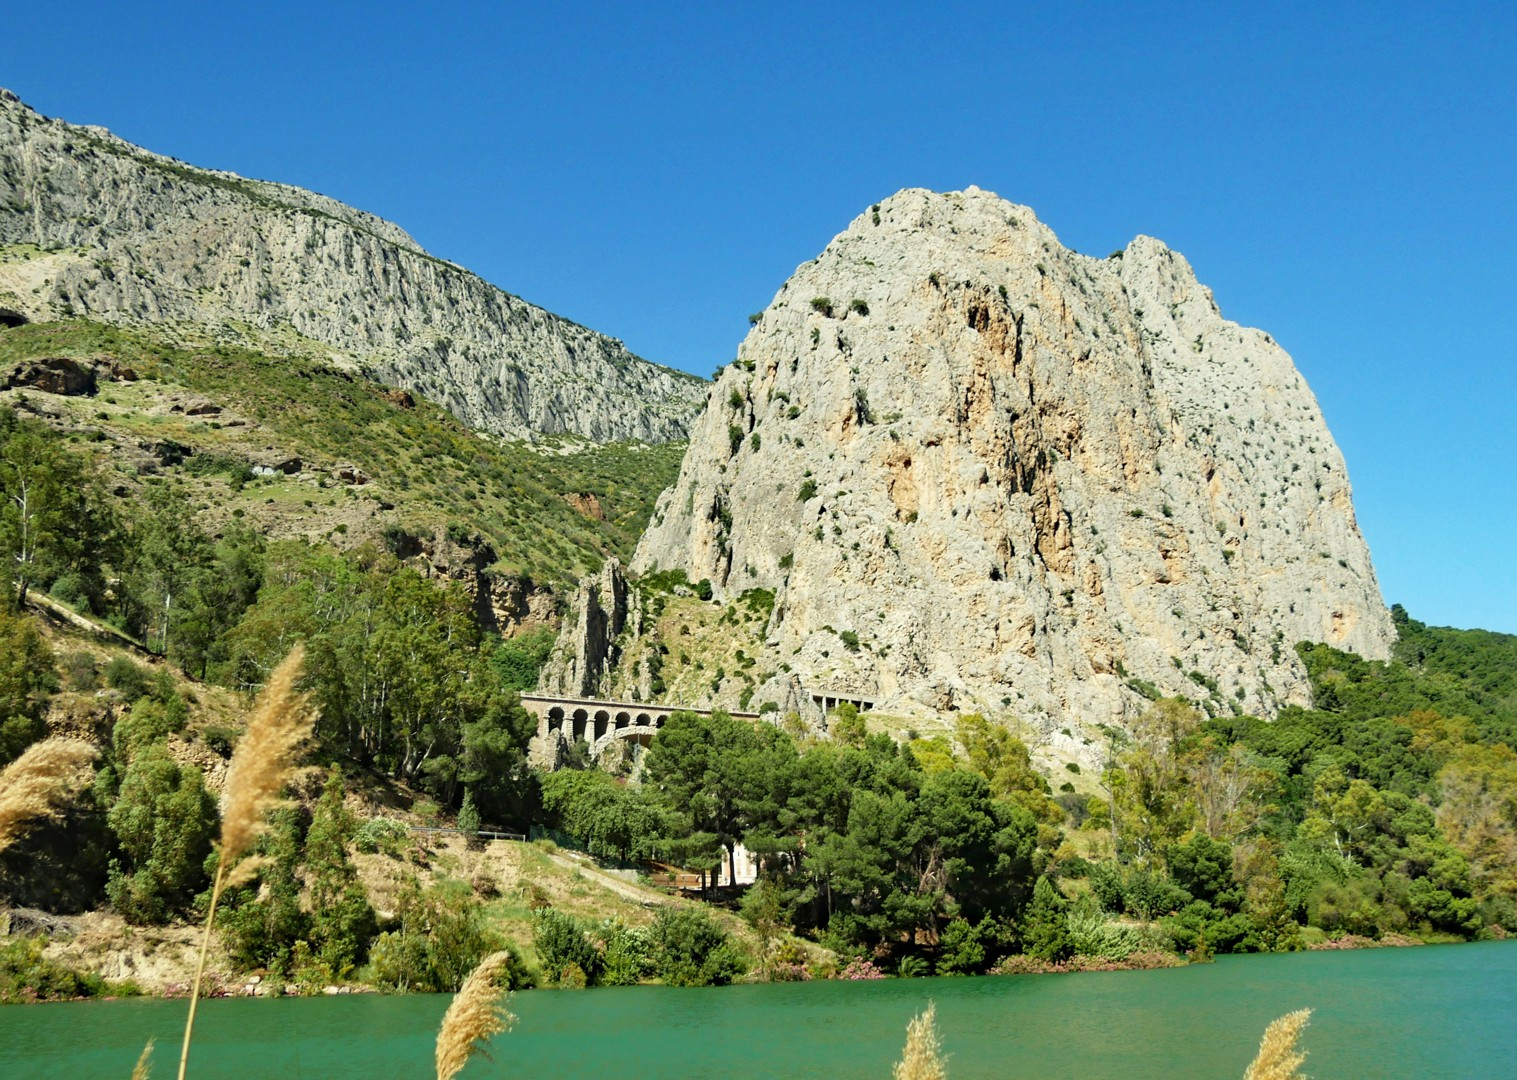 el-chorro-lake-road-cycling-trip.jpg - Spain - Basque Country to Andalucia - North to South - 21 Day - Guided Road Cycling Holiday - Road Cycling